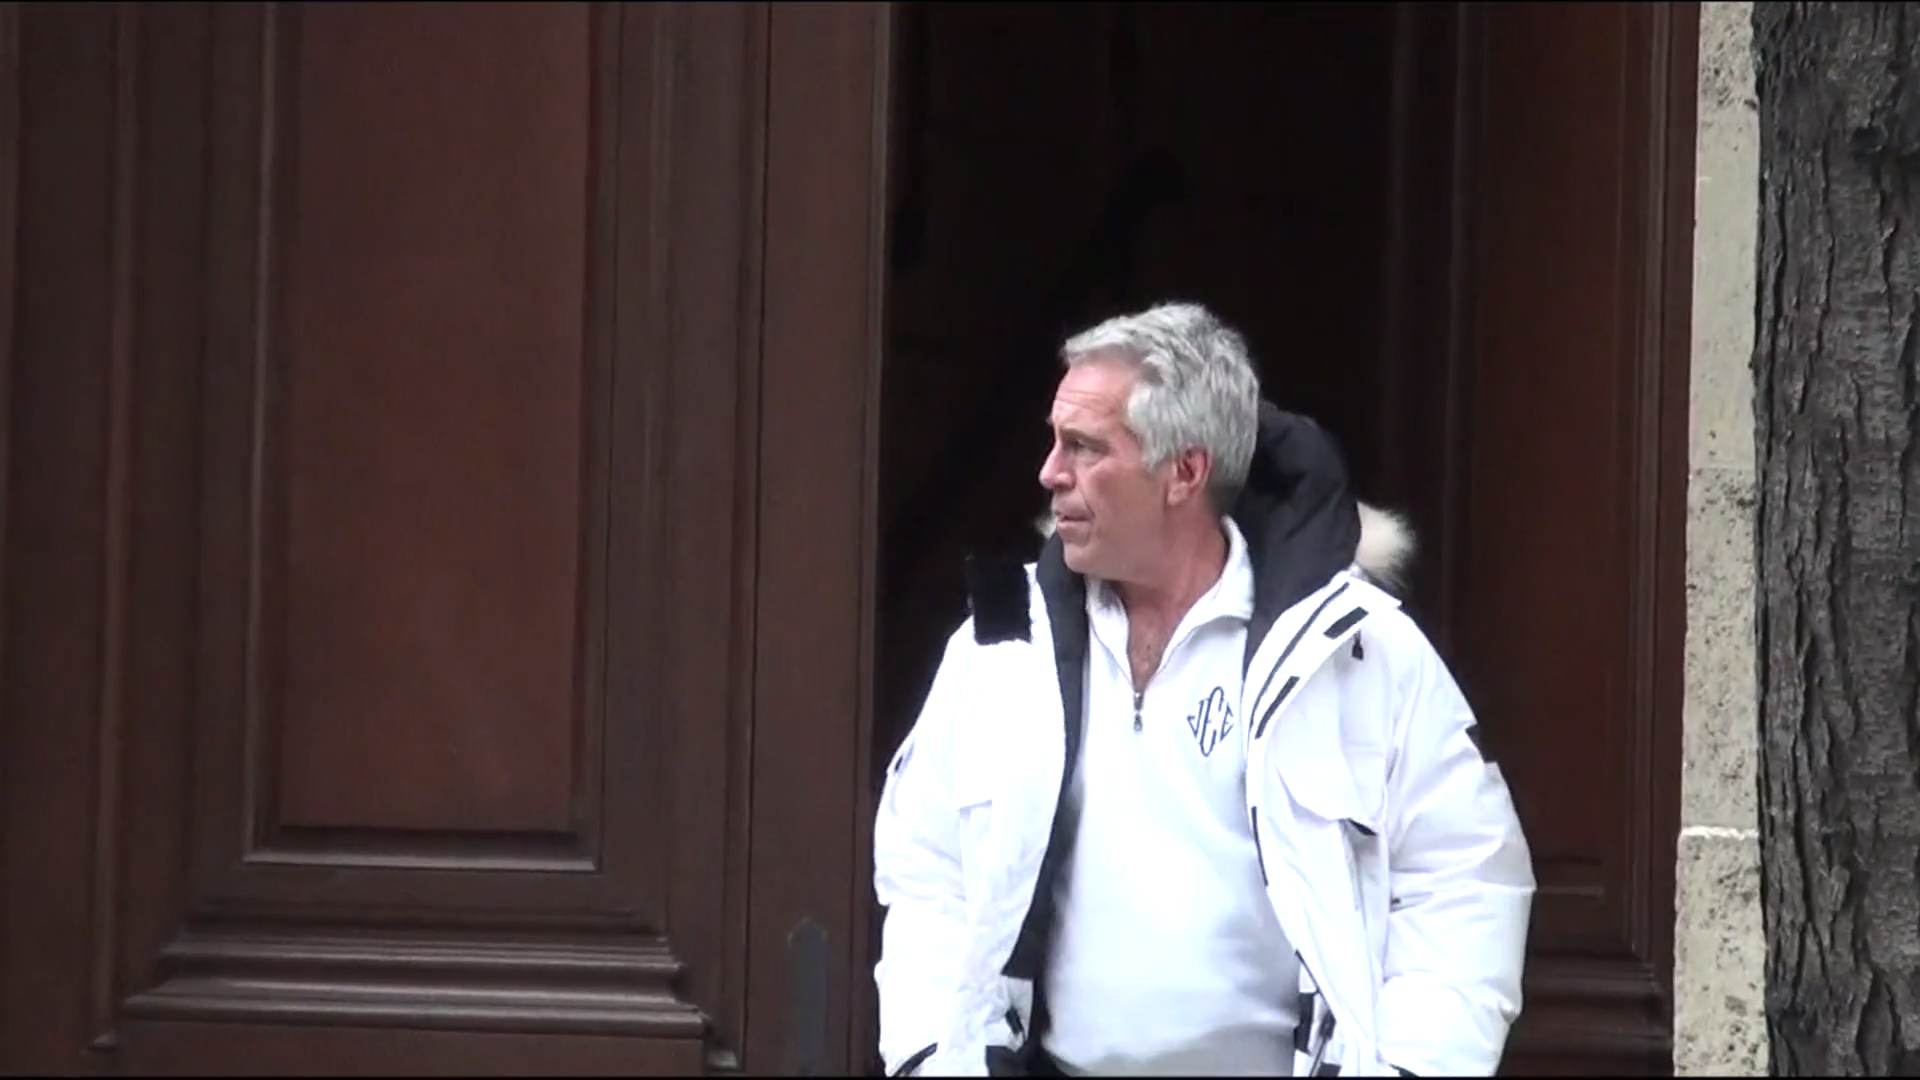 Prince Andrew 'appalled' by Epstein sex crime allegations